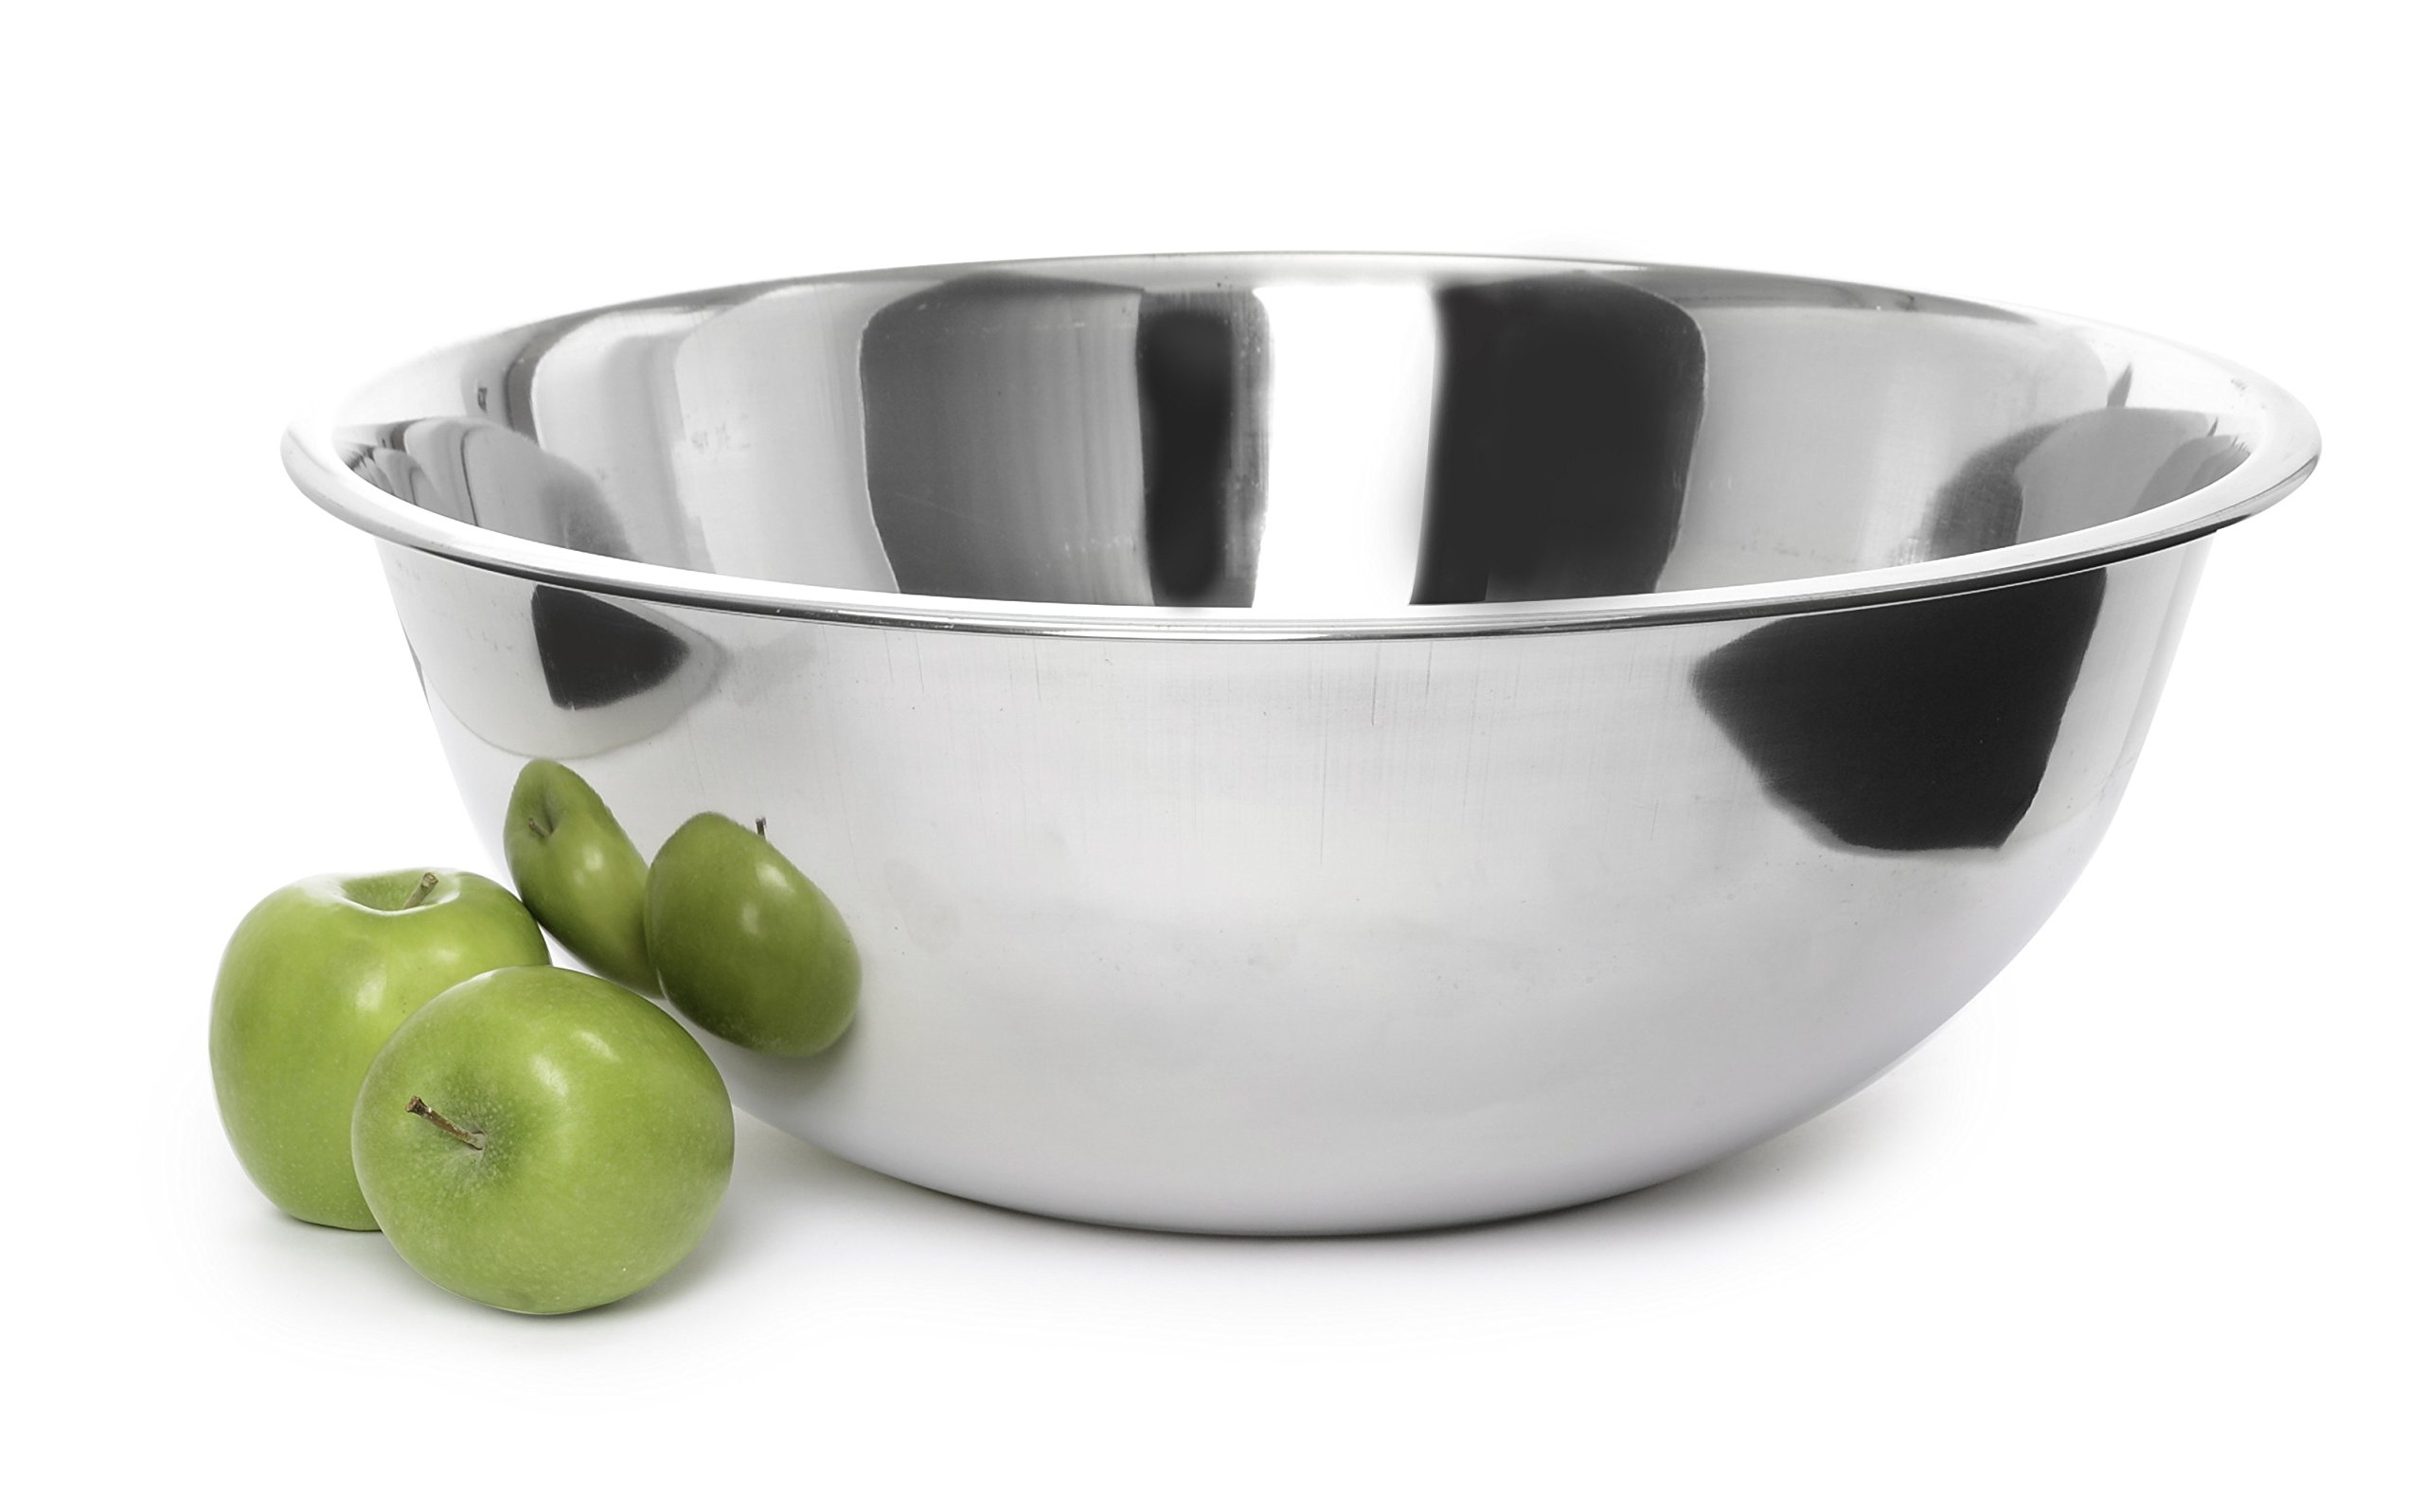 Ybmhome Heavy Duty Deep Quality Stainless Steel Mixing Bowl for Serving Mixing Baking and Cooking 1190 (22 Quart)